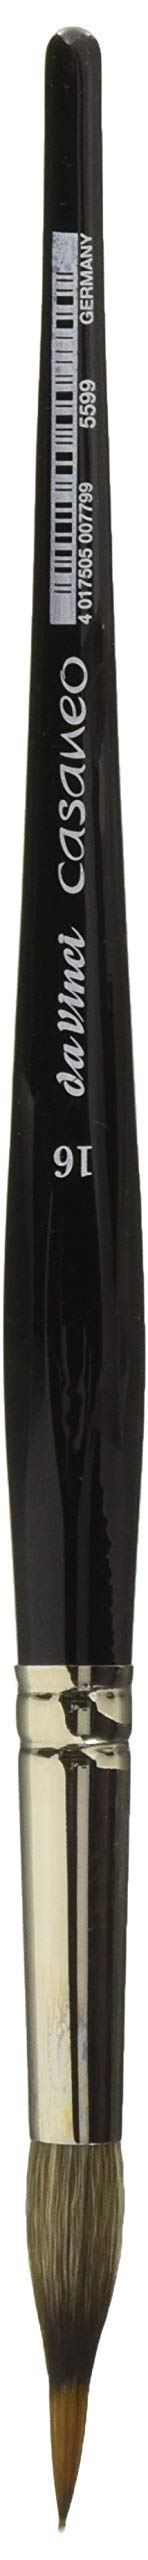 da Vinci Watercolor 5599-16 Casaneo Watercolor Brush Black by da Vinci Watercolor (Image #1)